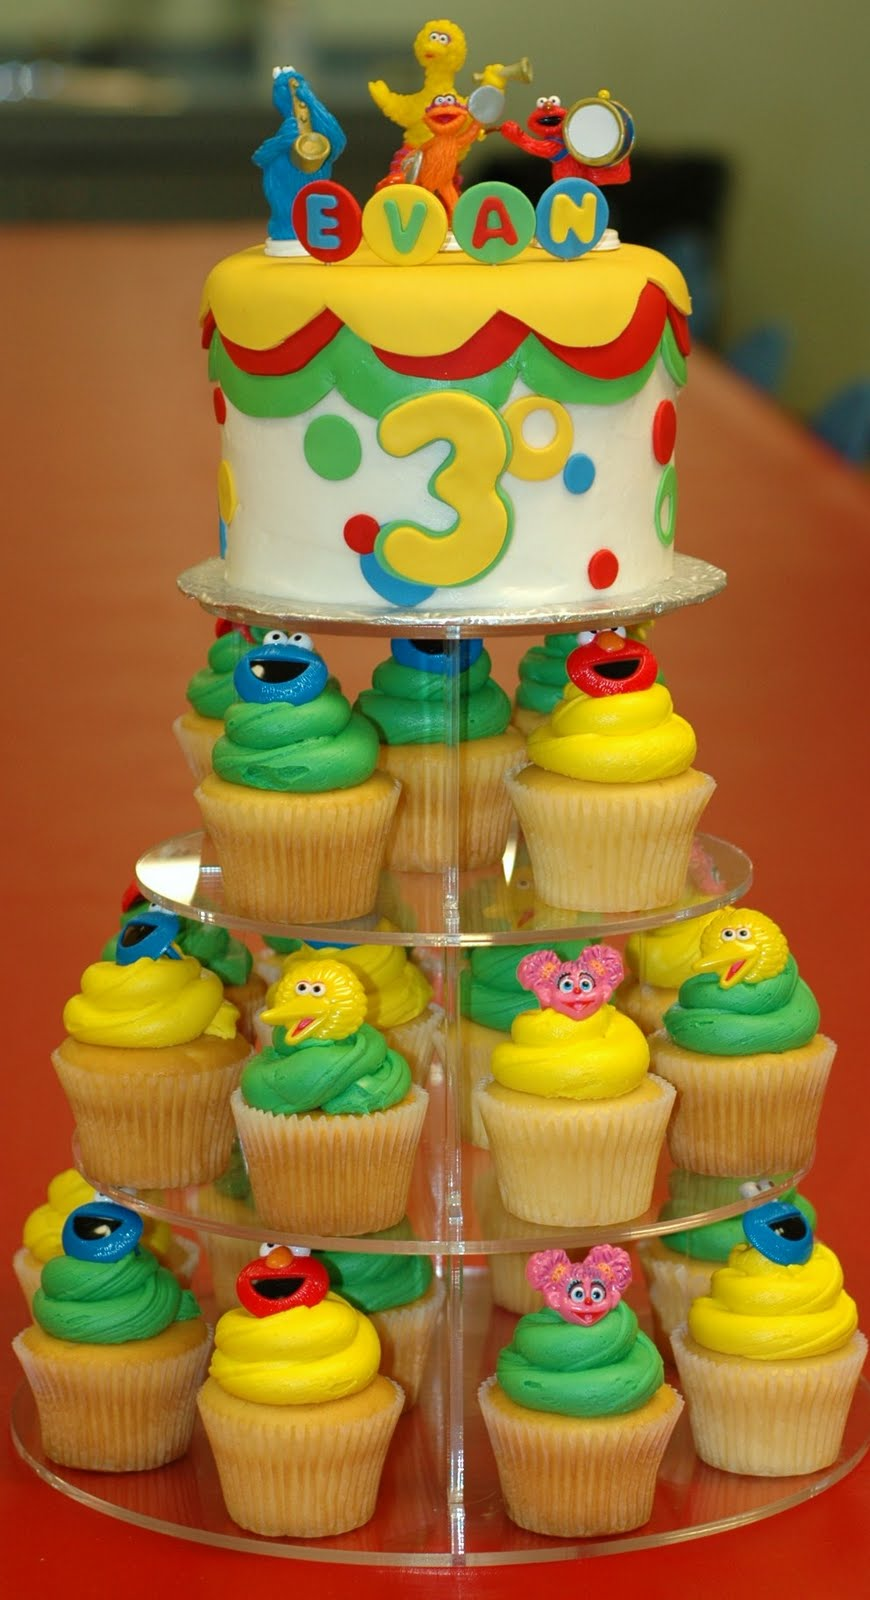 This Was For A 3 Year Old Little Bots Birthday Sesame Street The Theme Of Course I Delivered To Childrens Museum In Greensboro